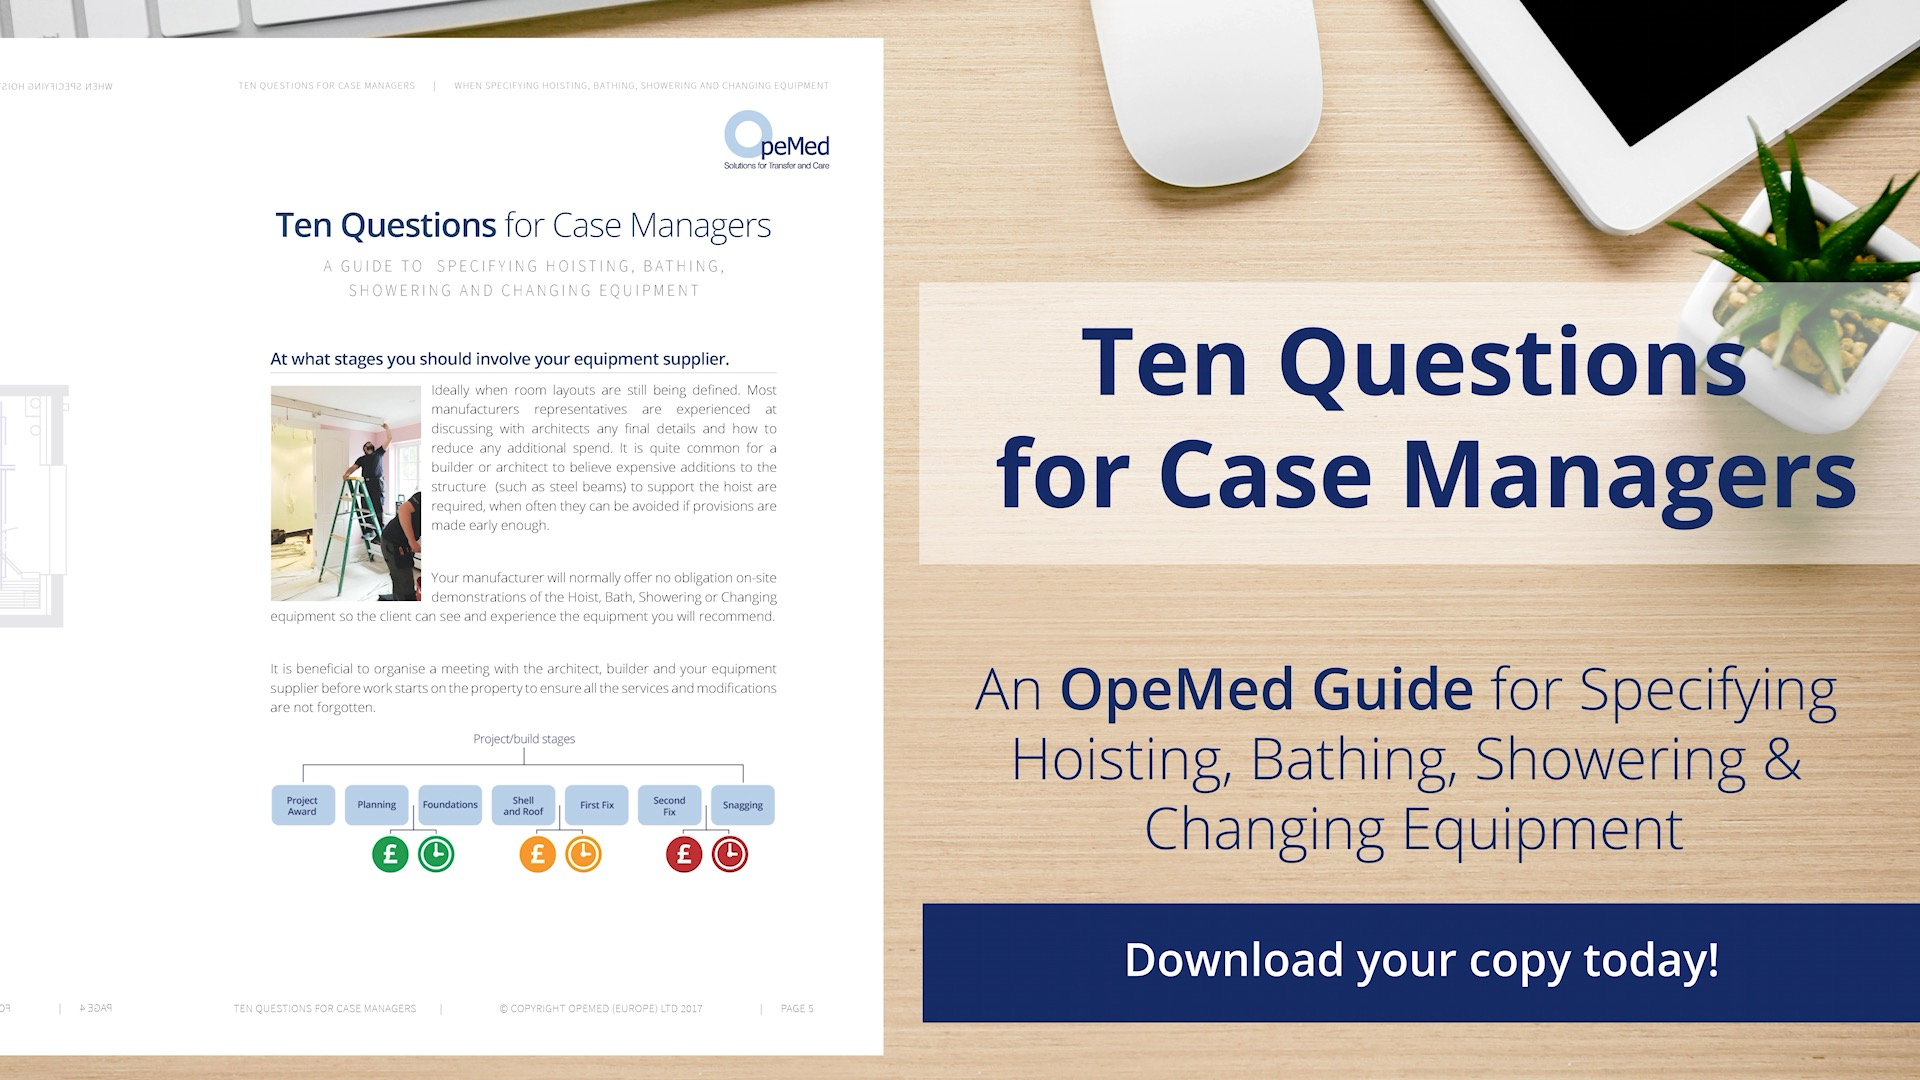 Ten Questions for Case Managers